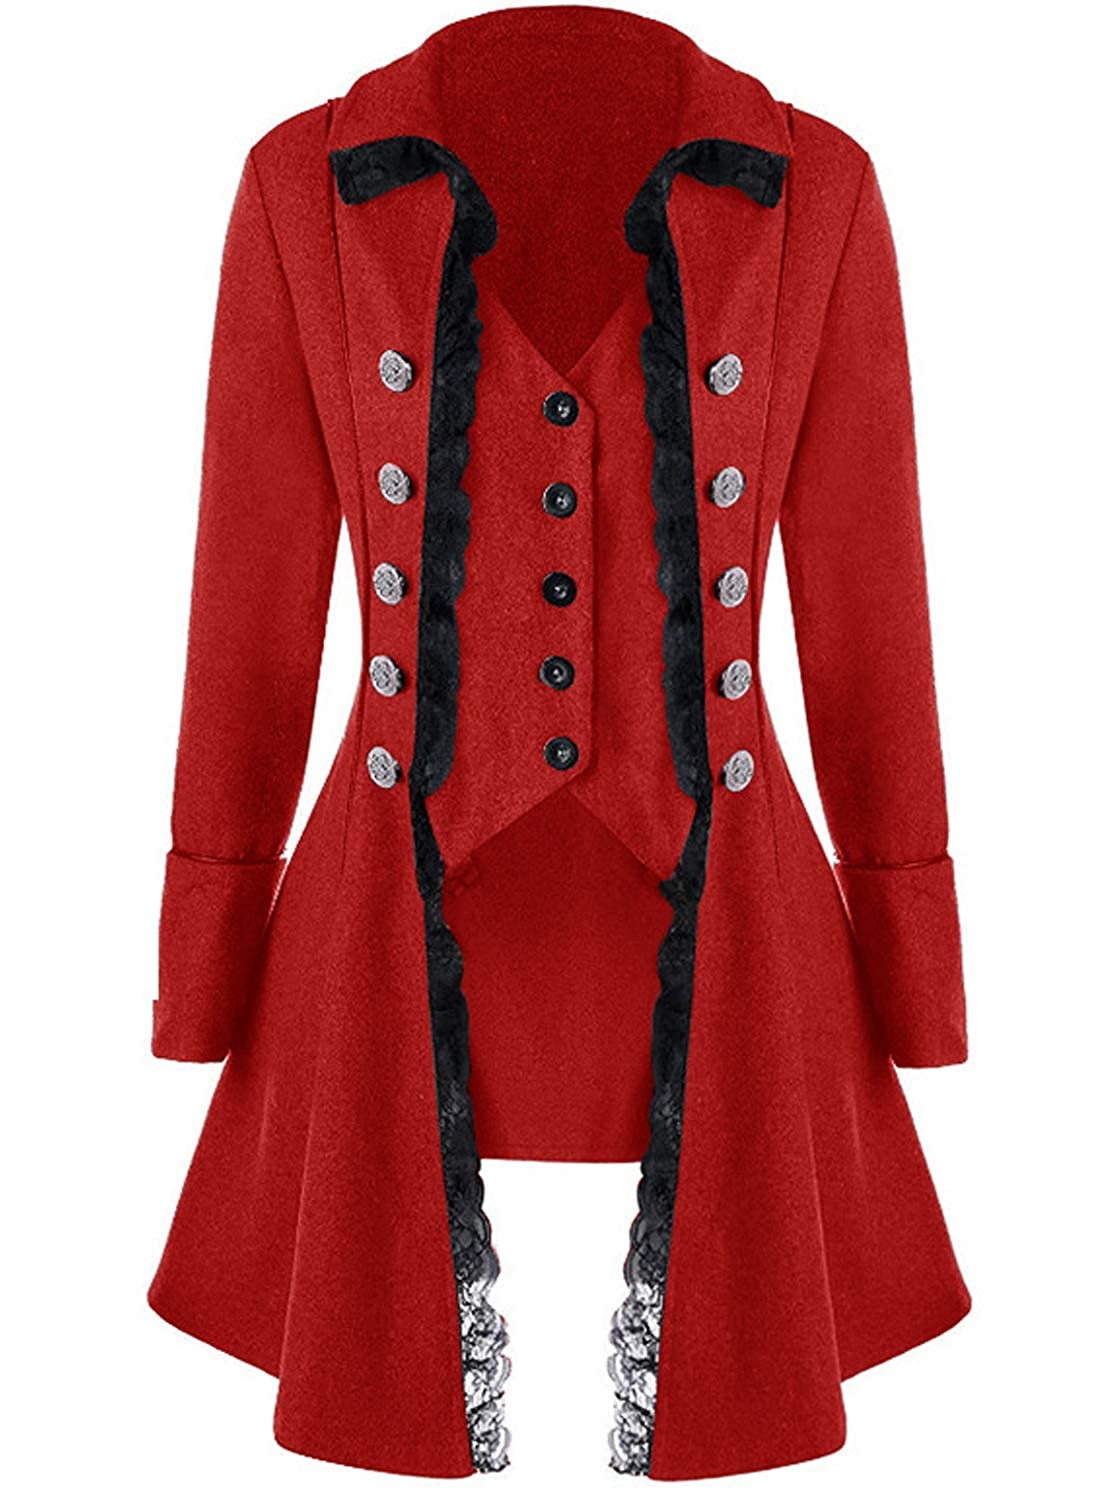 Lady Pirate Fantasy Black Lace Trimmed Tailored Red Pirate Tailcoat - DeluxeAdultCostumes.com